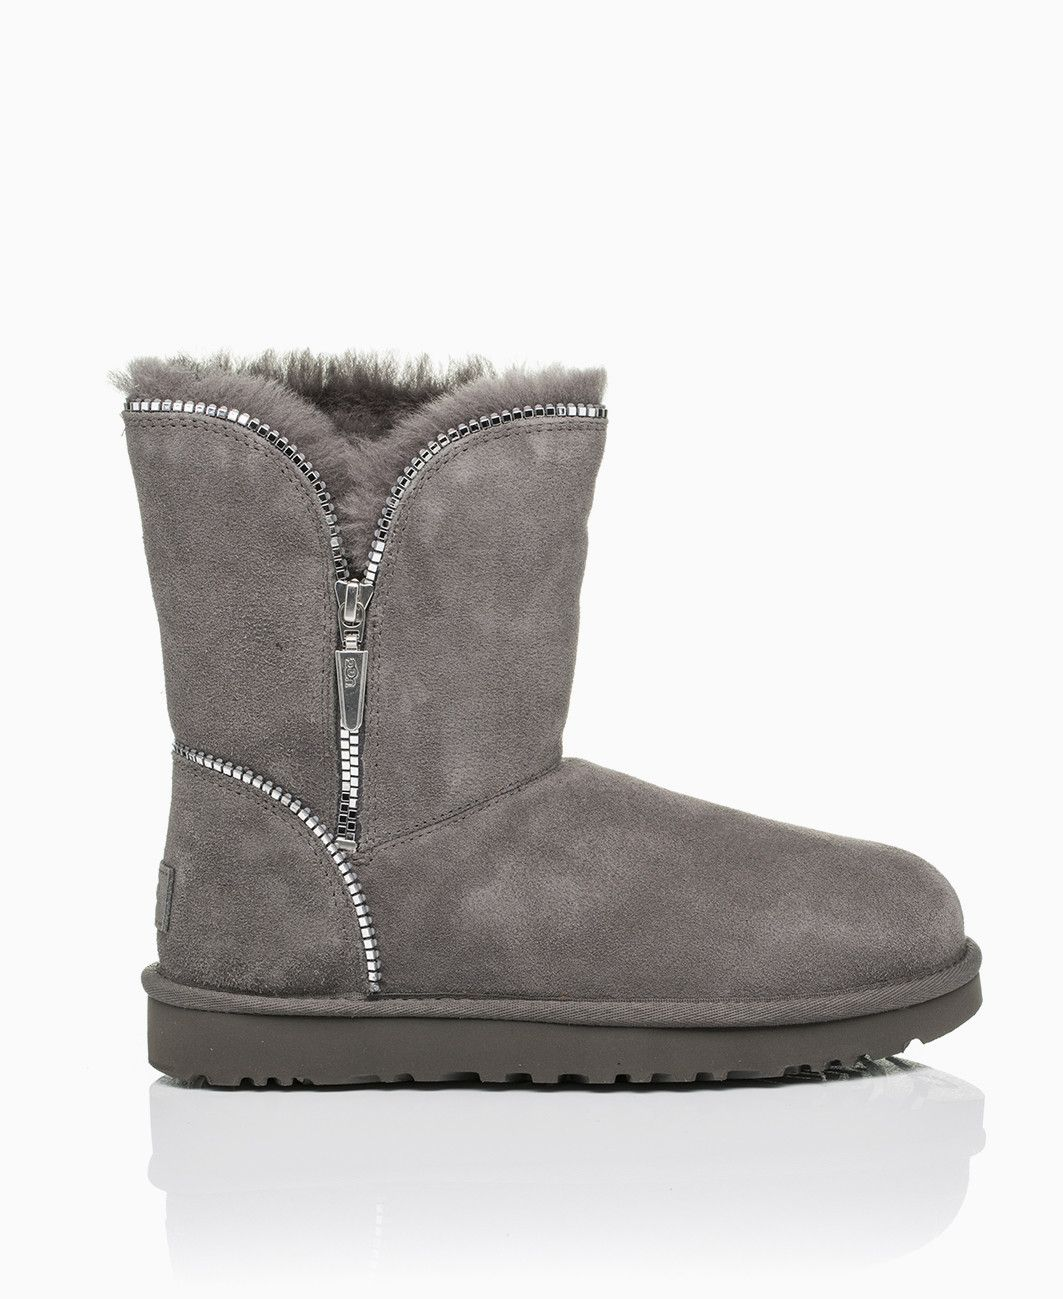 Ugg Florence Zipper Detail Boots Grey Shoes